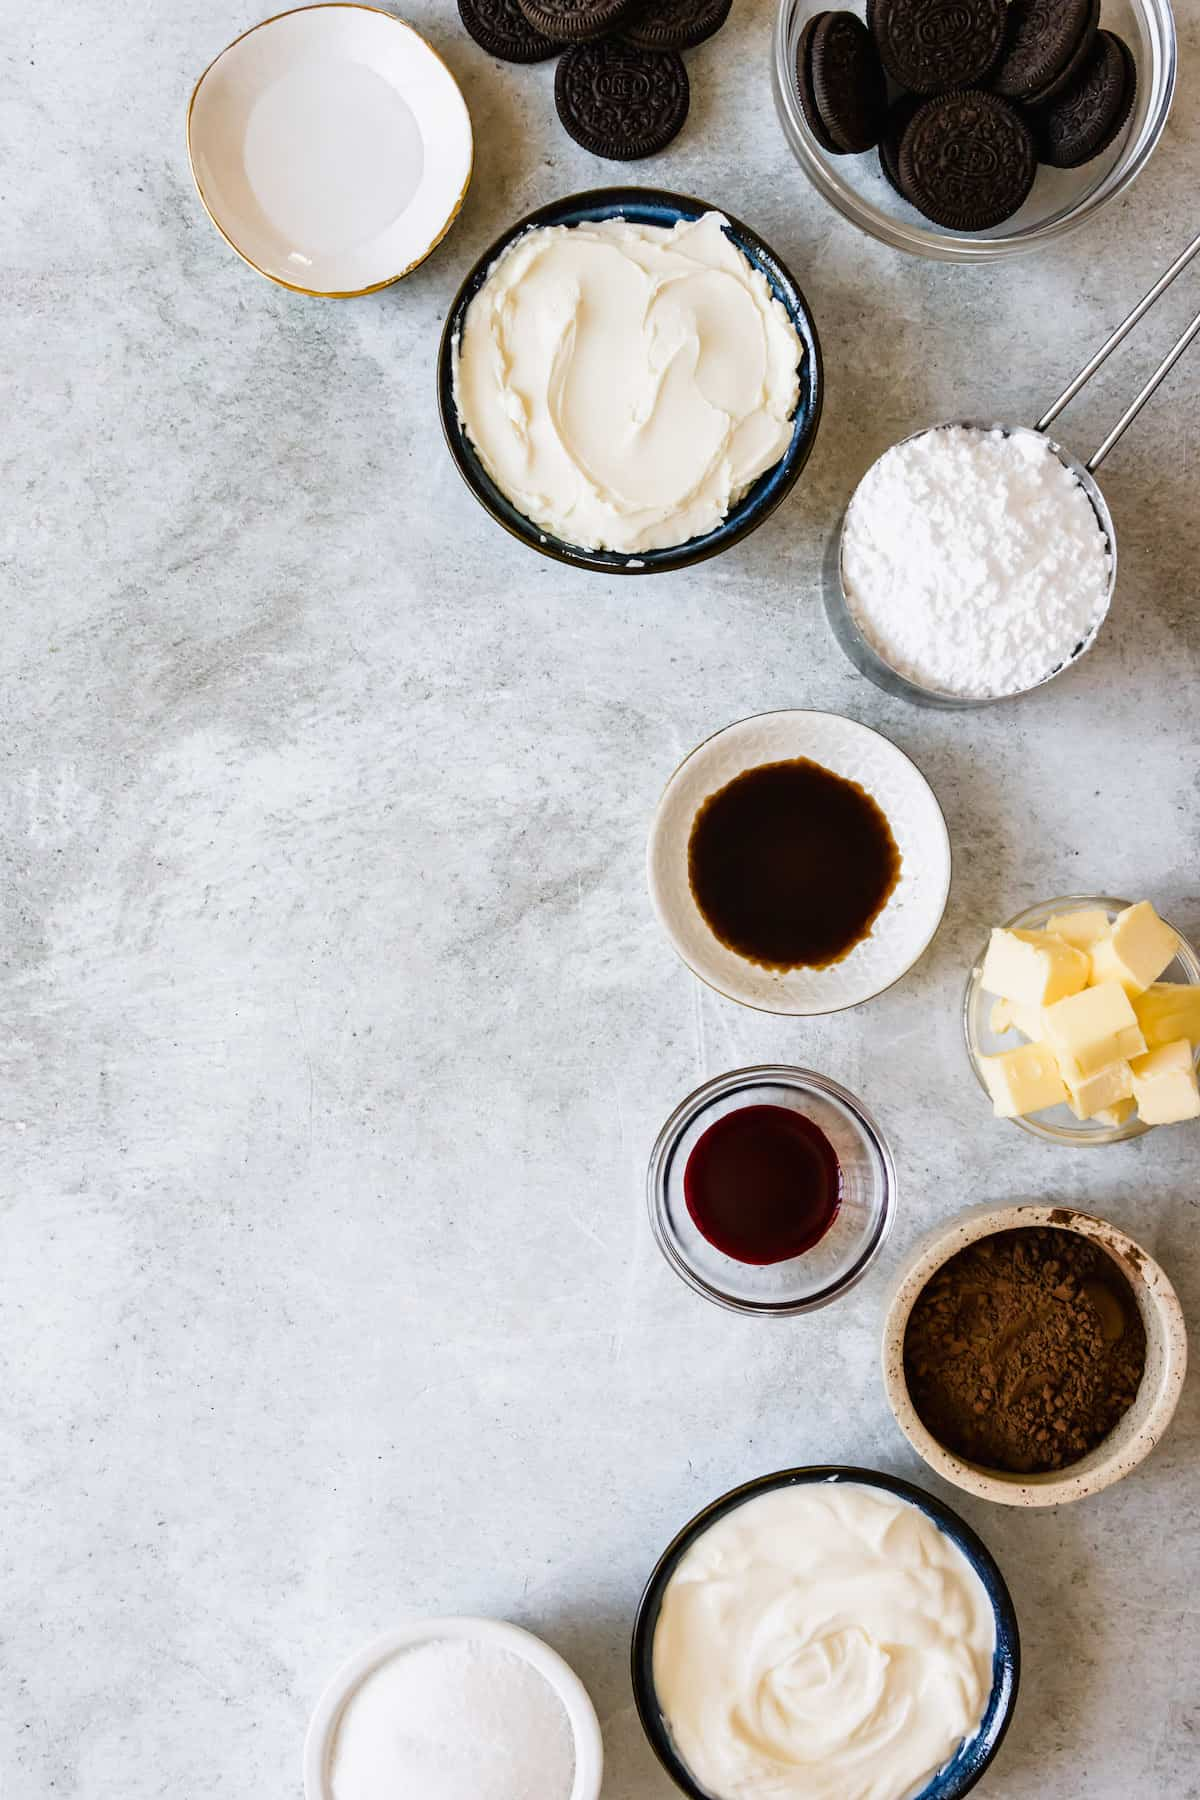 The Red Velvet Cheesecake Ingredients Assembled on a Light Gray Marble Counter